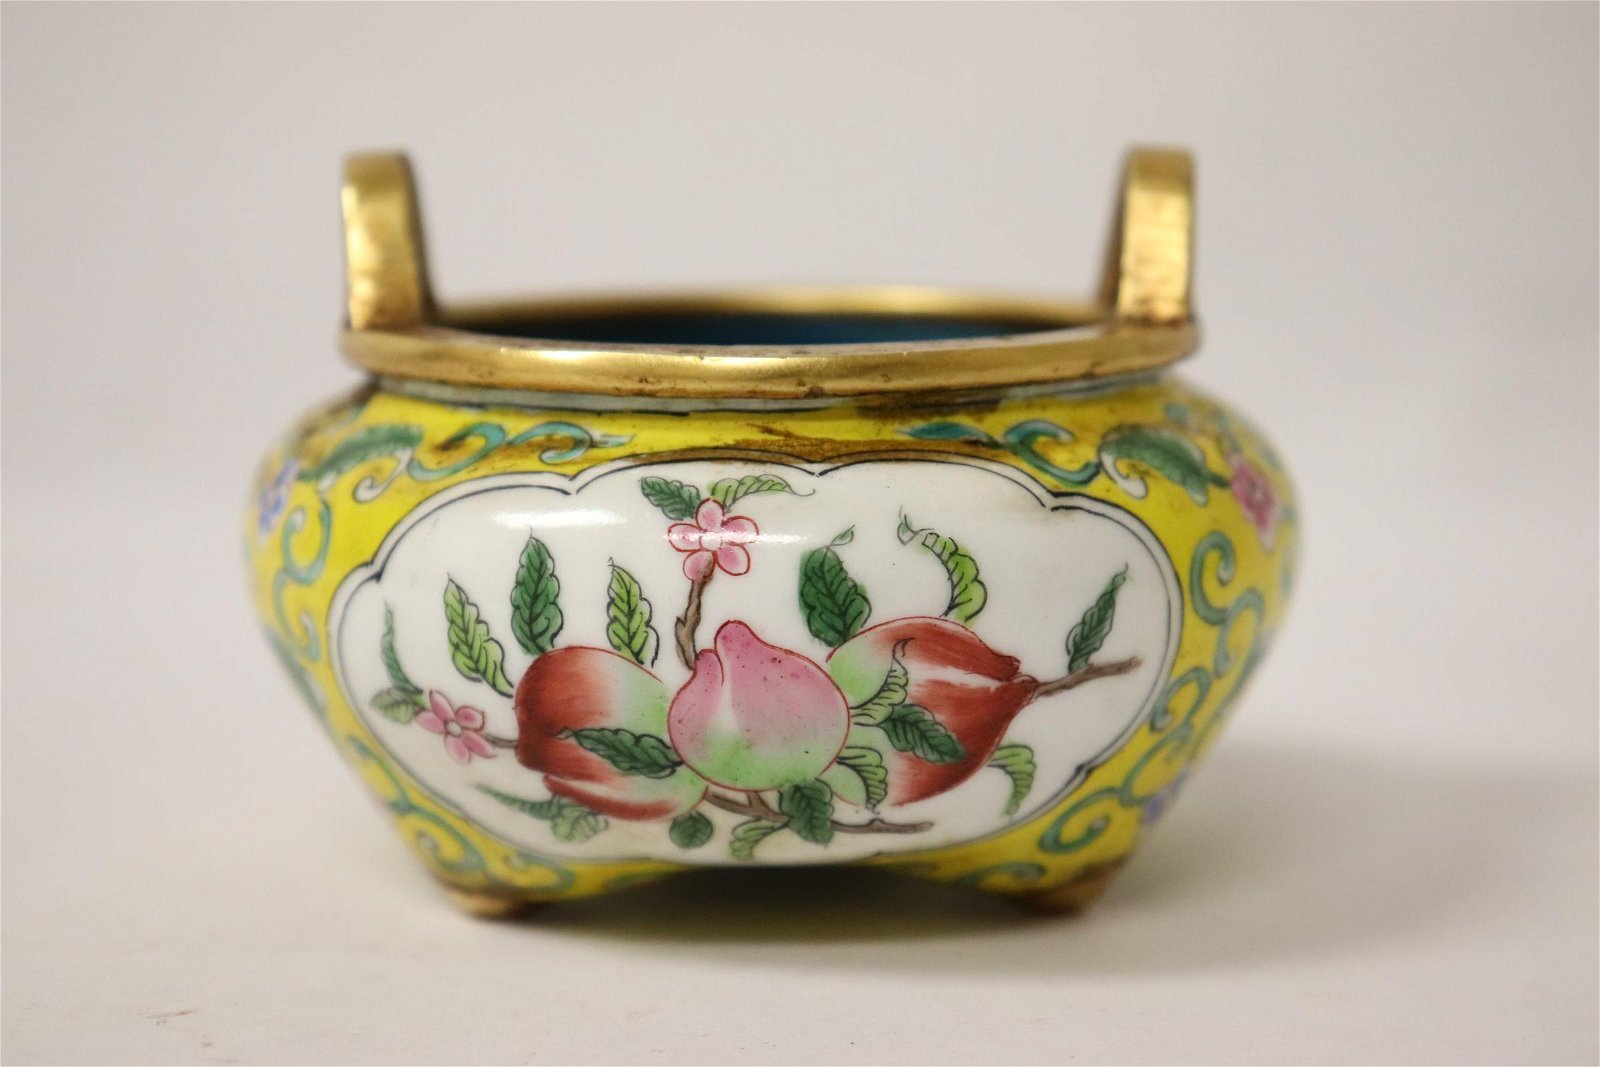 A fine Chinese enamel on bronze small censer